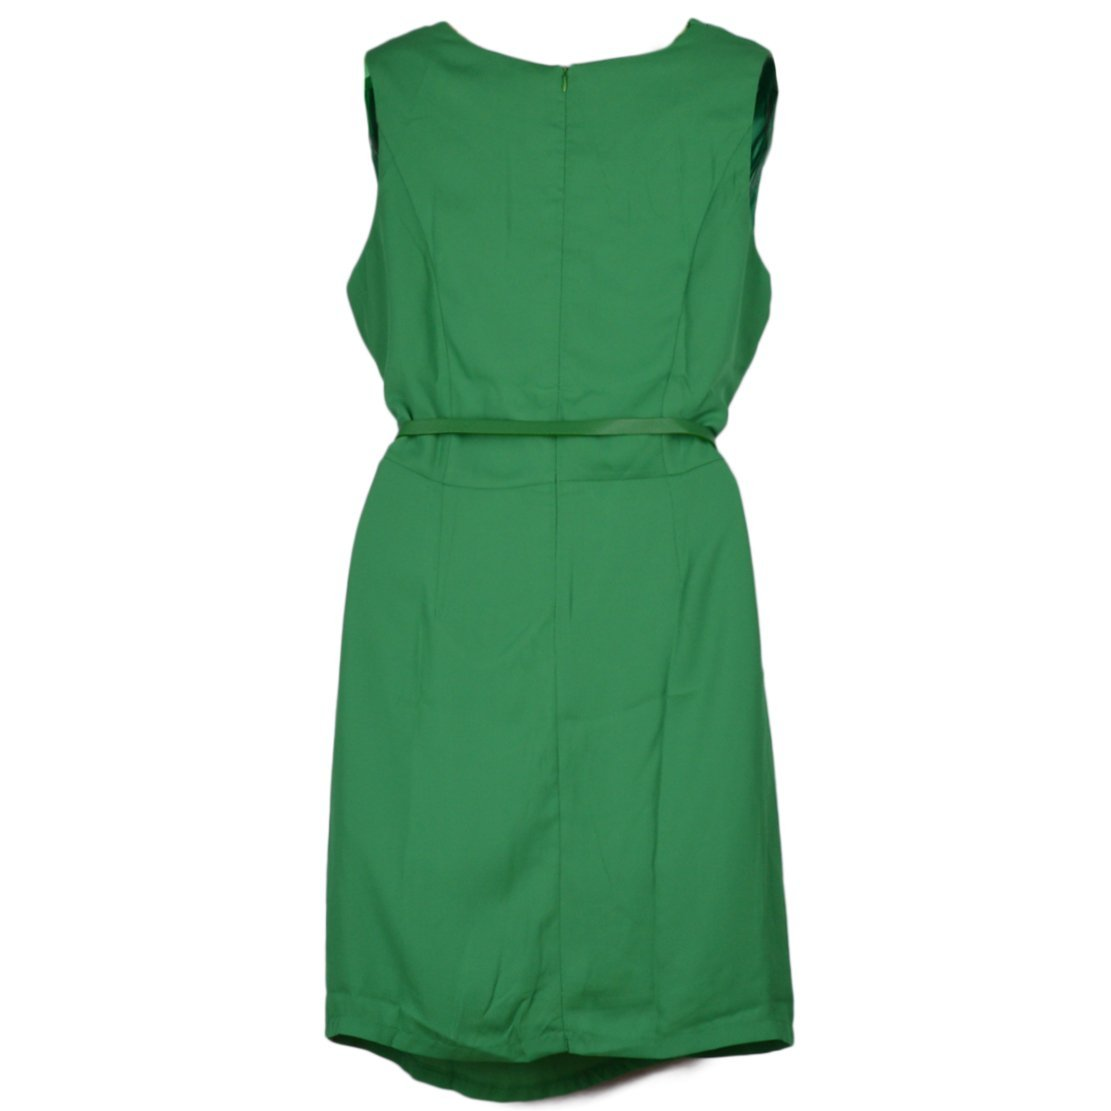 Crepe Wrinkle Neck Spell Sleeveless Tiny Dress With Belt at Amazon Womens Clothing store: